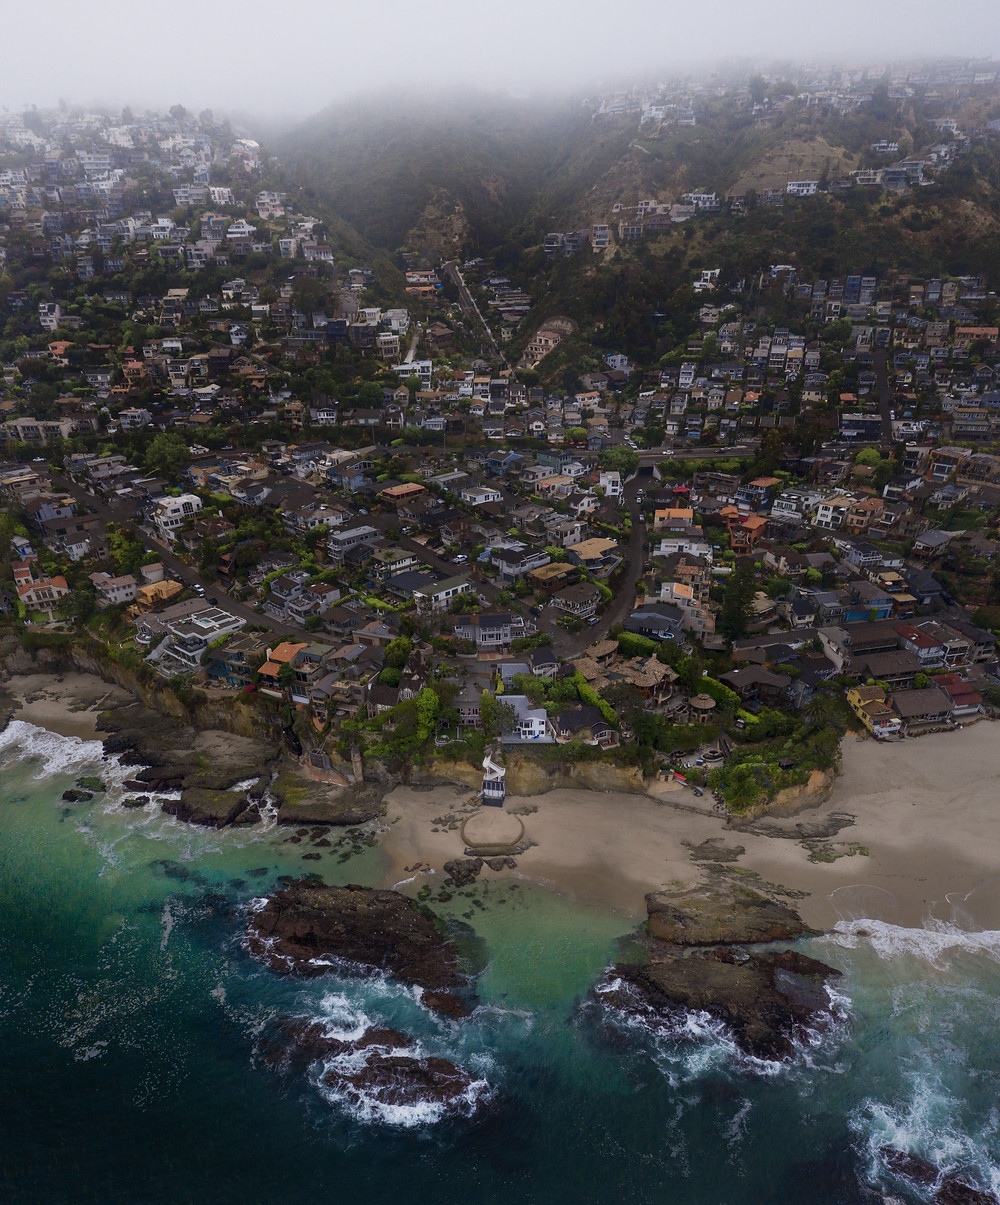 Fog rolling in over the Laguna Beach homes on a hill just above a beautiful beach